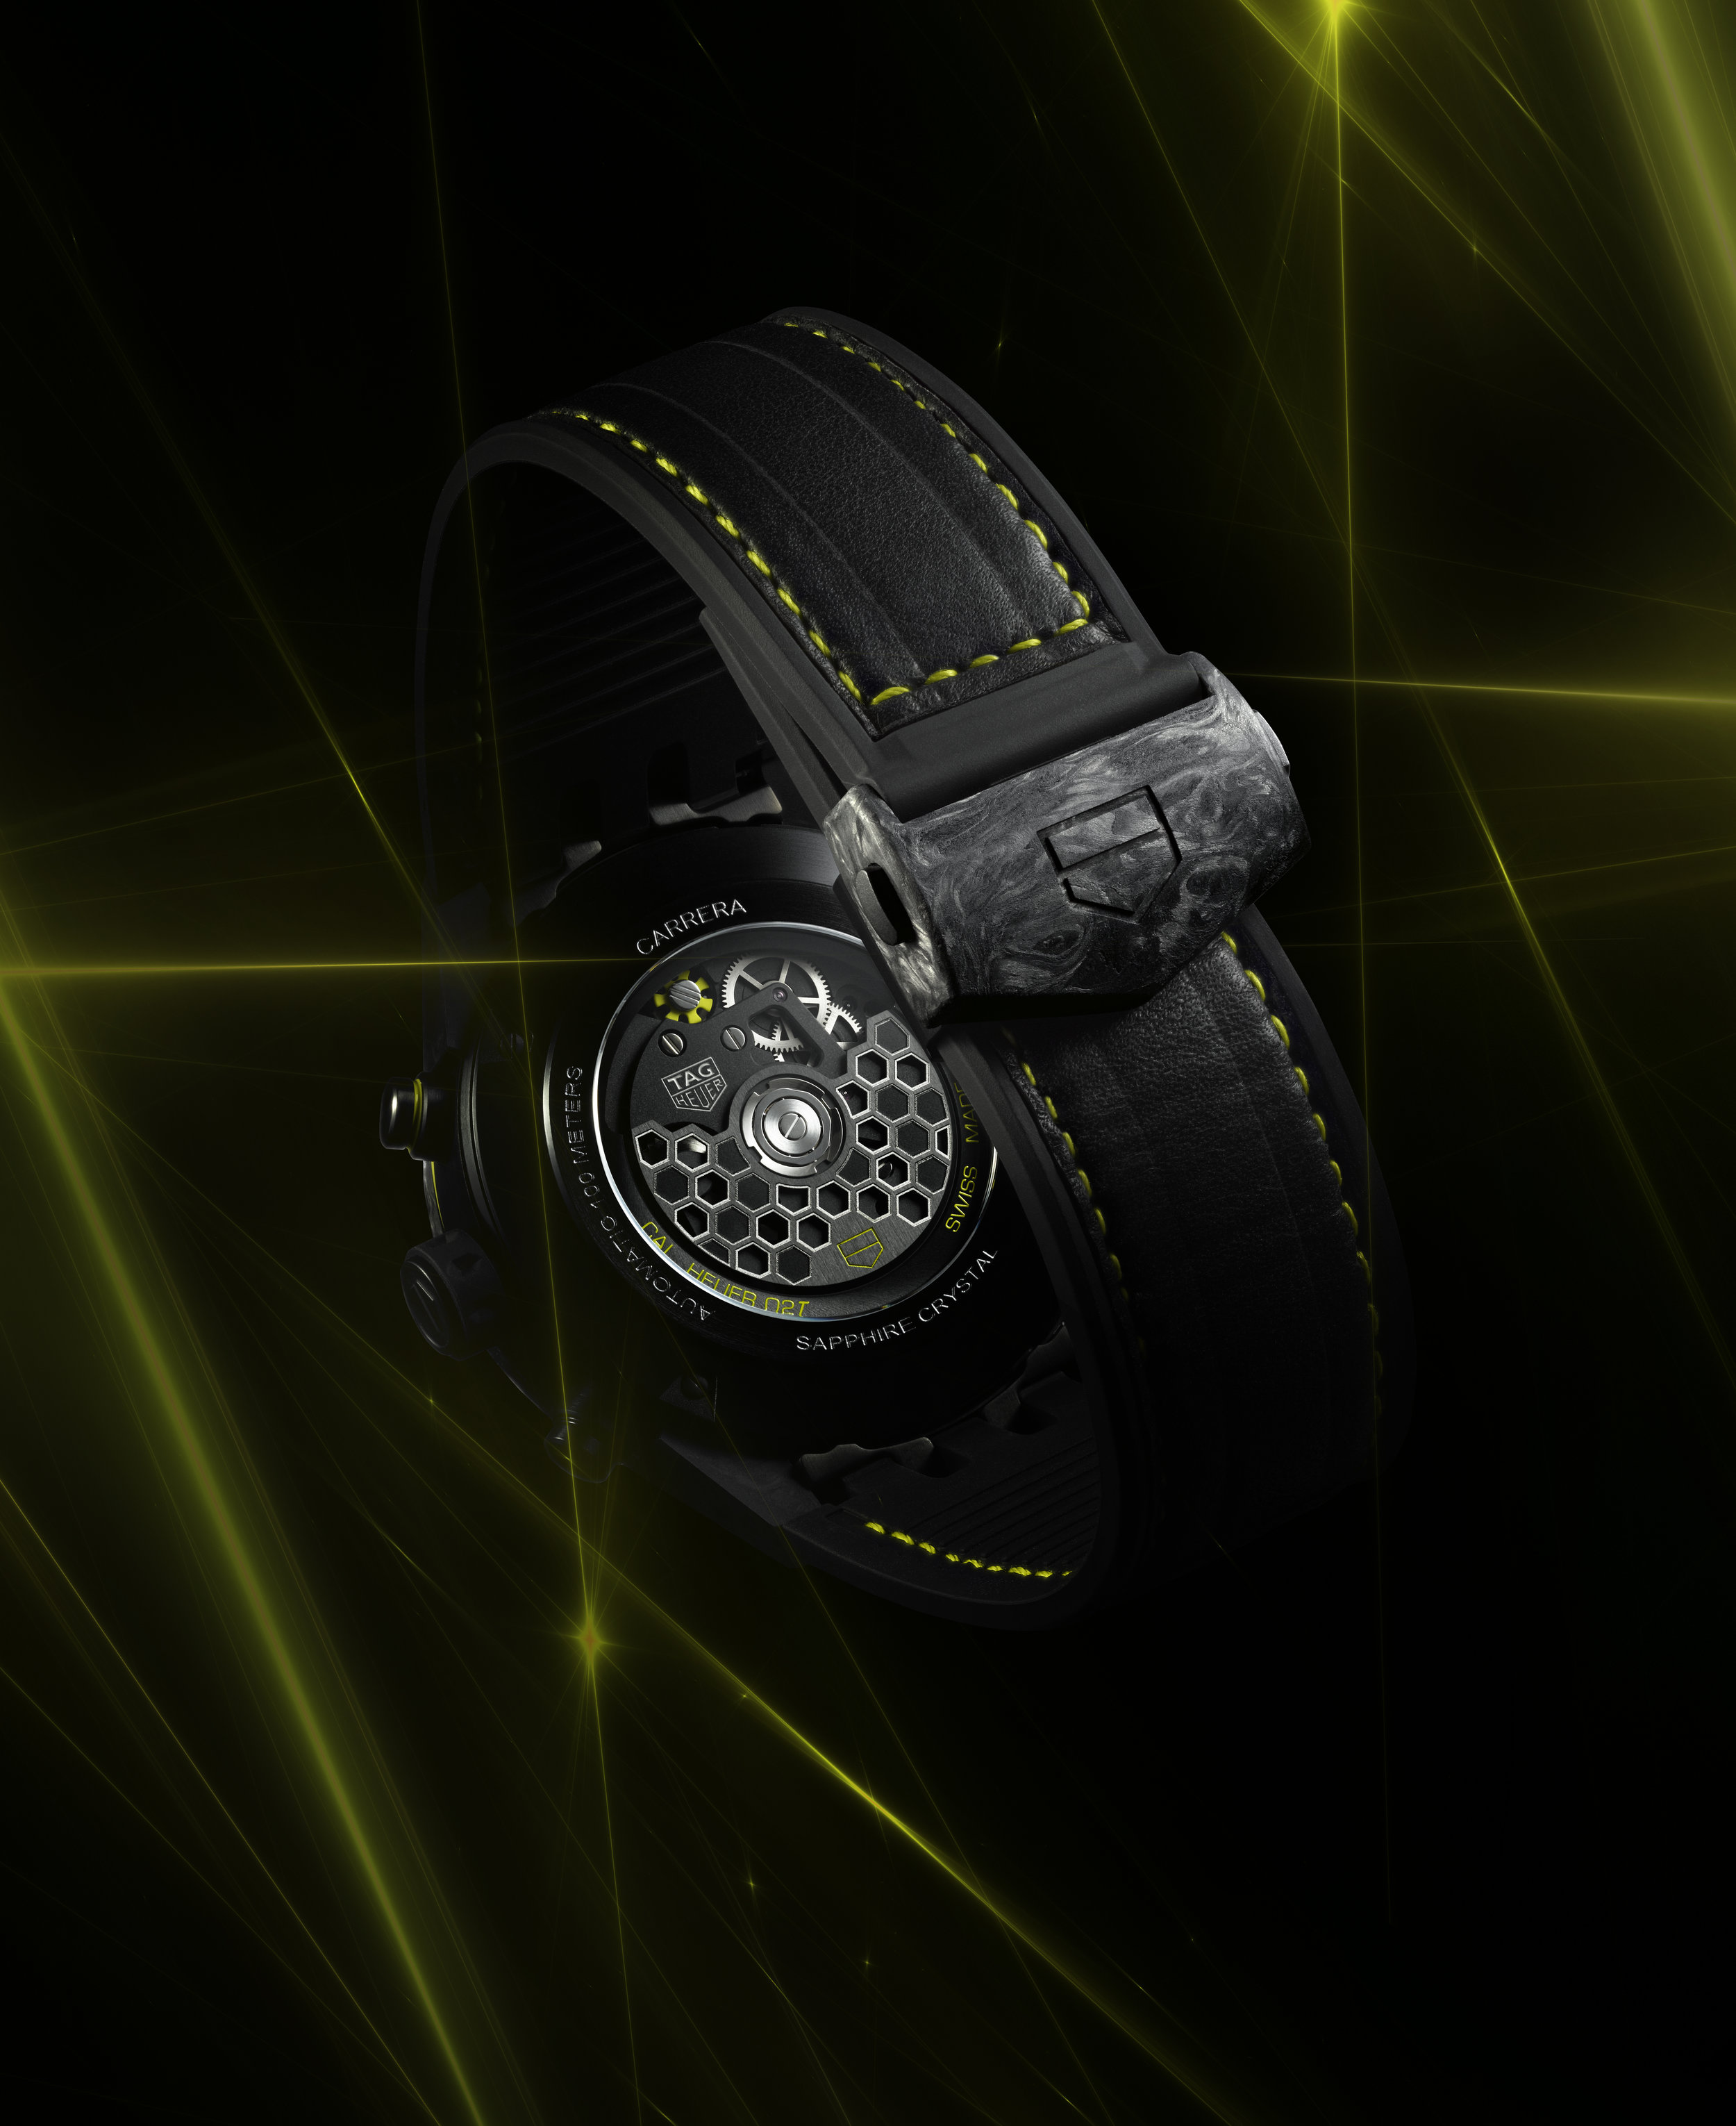 CAR5A8K.FT6172 TH CARRERA NANOGRAPH HEUER 02T - CASEBACK WITH LASERS 2019.jpg